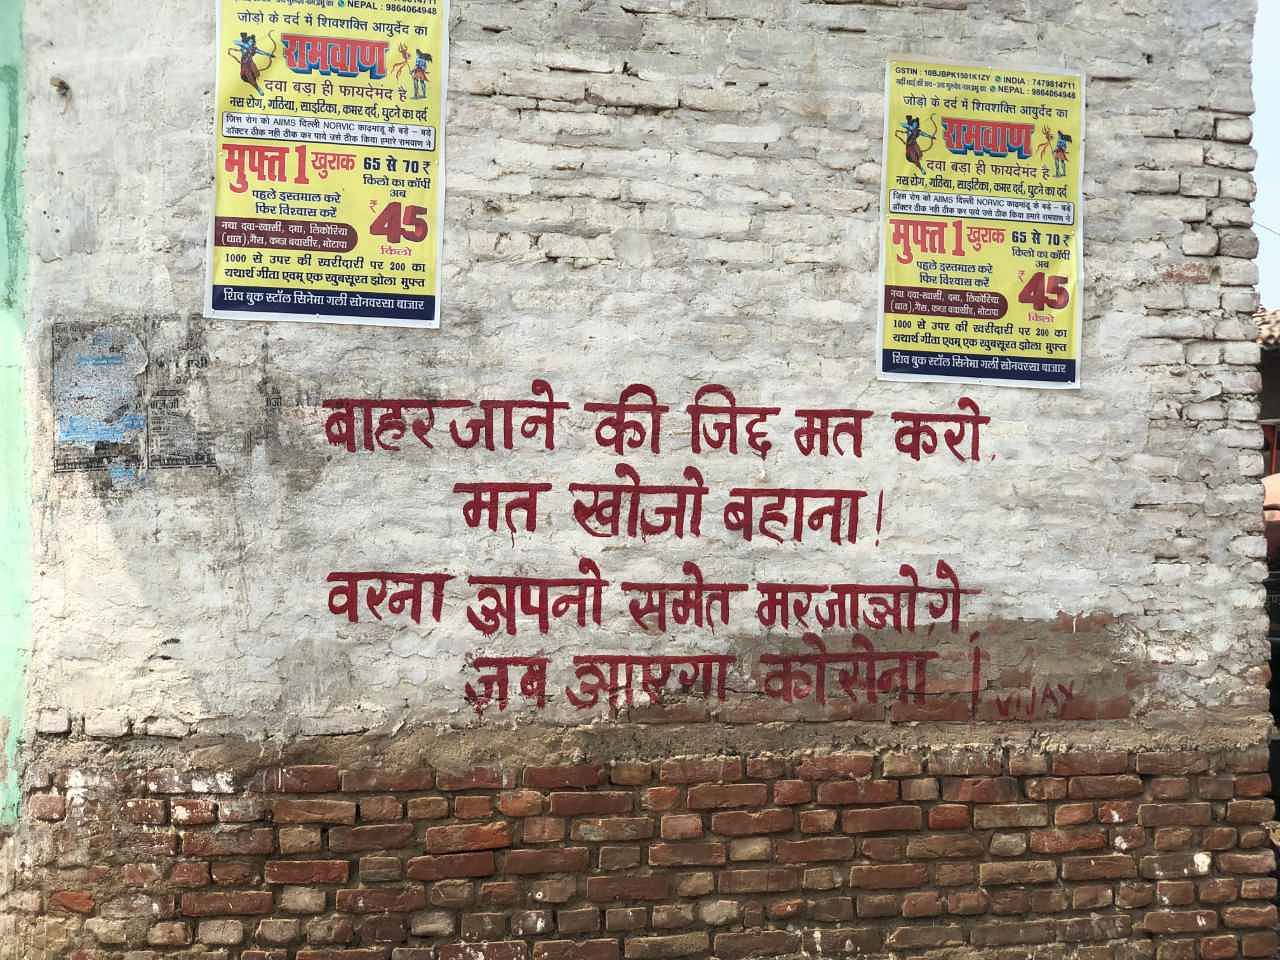 A slogan painted on a wall in Singhwahini warns villagers to stay home and avoid contracting Covid-19   ThePrint